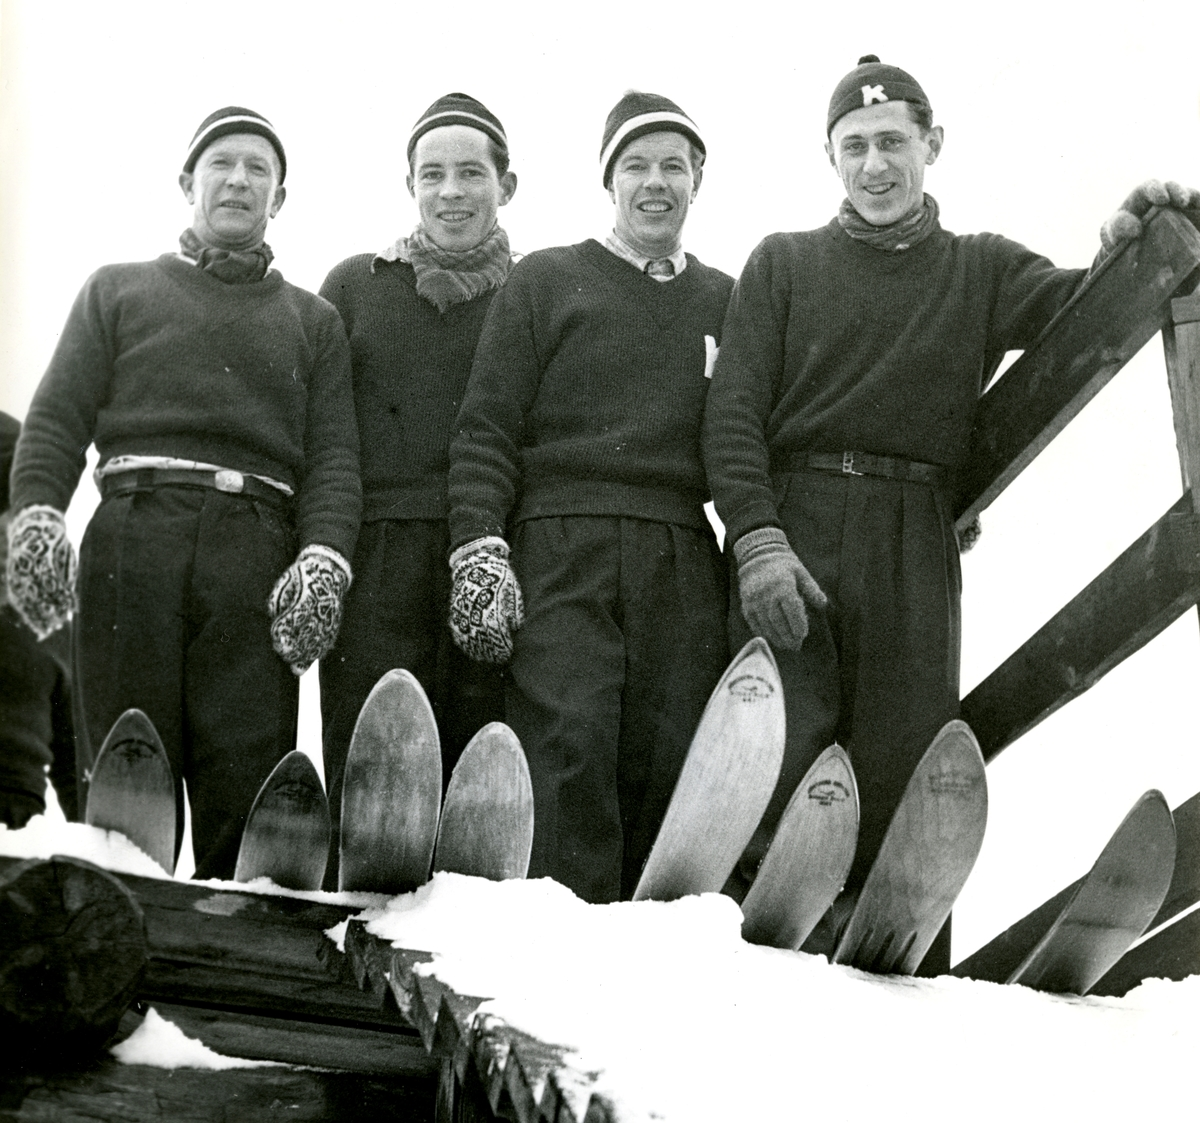 Kongsberg skiers in their prime